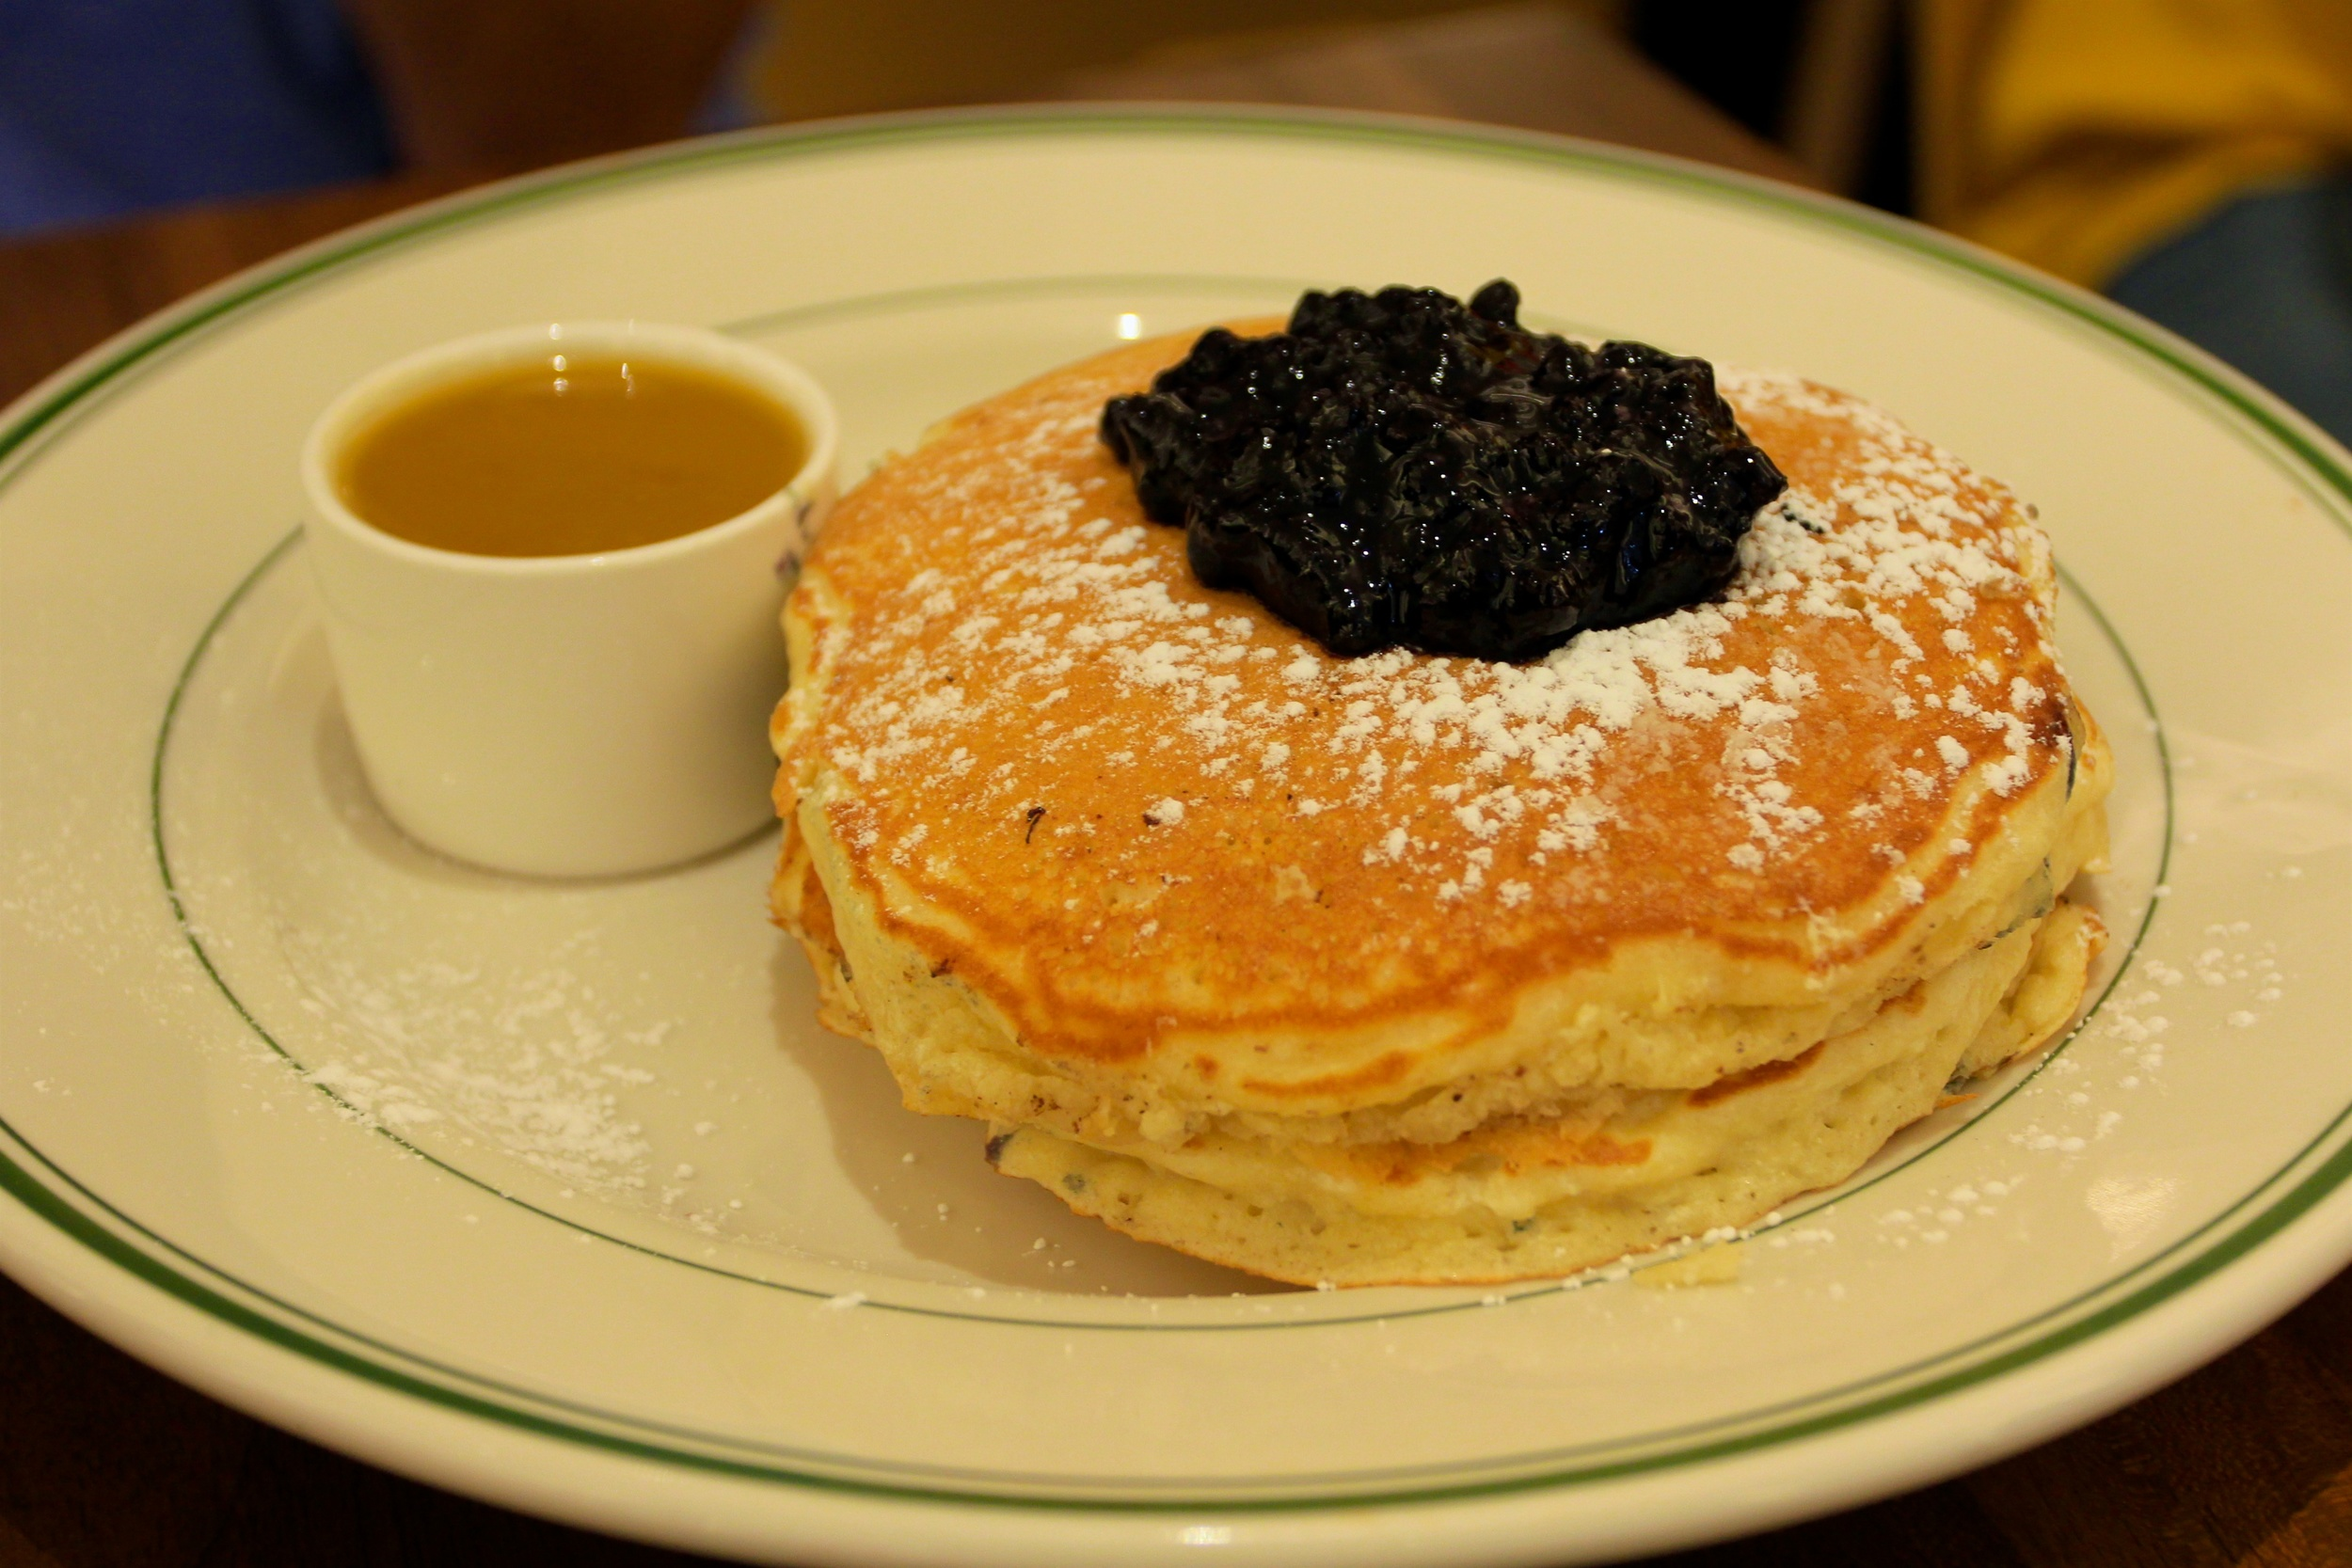 Wild Blueberries Pancakes served with a side of Maple Butter (excuse the poor white balance here)